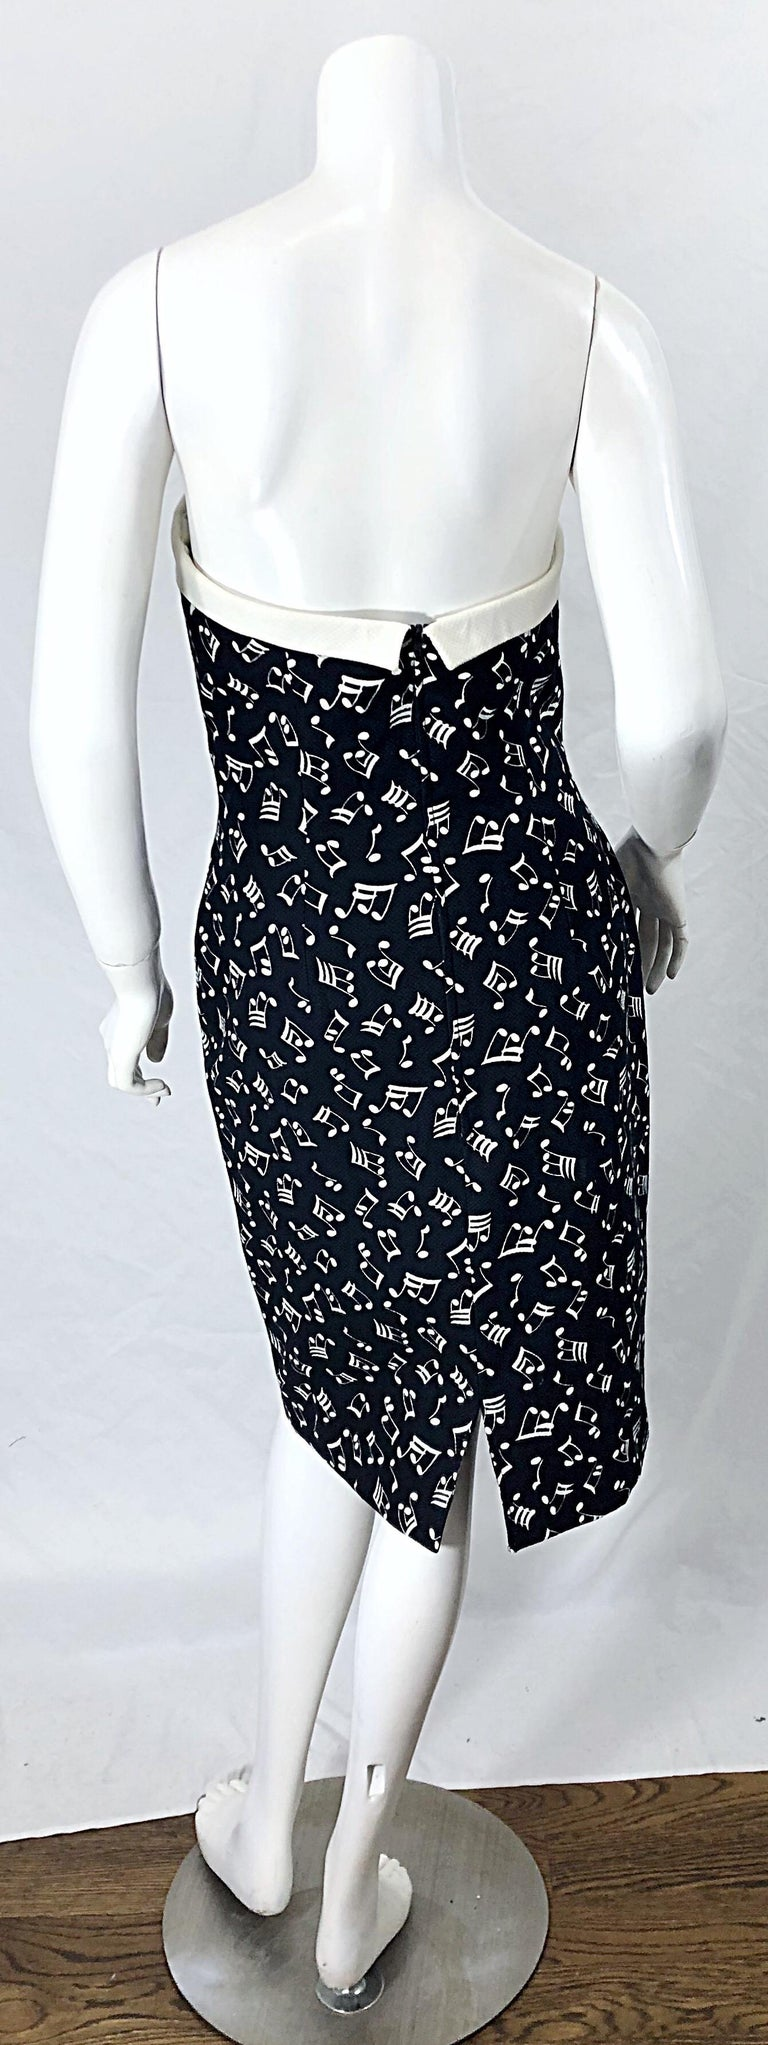 1980s Patrick Kelly Size 10 Novelty Music Print Black and White Strapless Dress For Sale 3